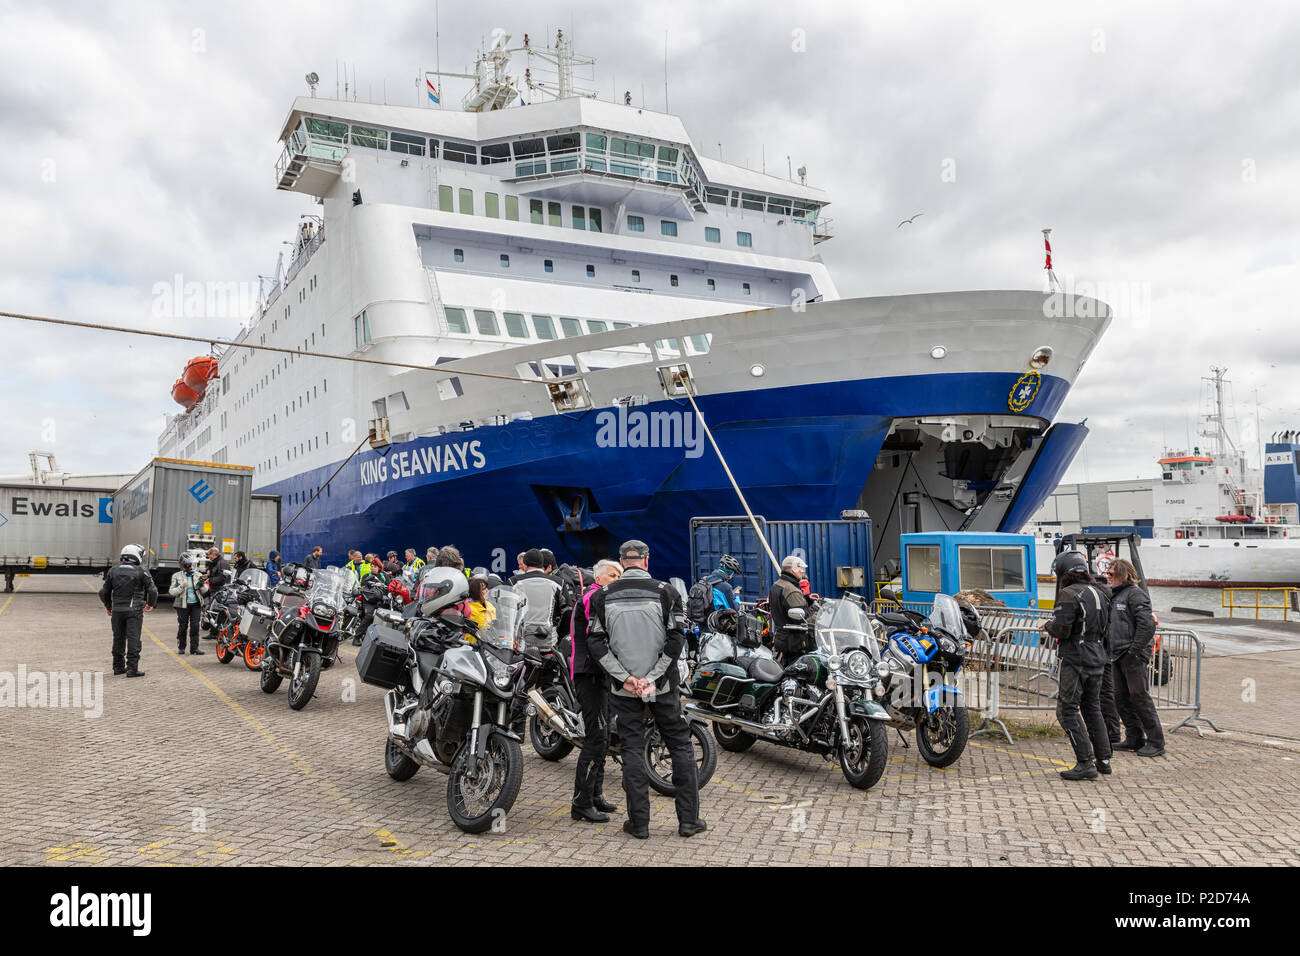 Ferry in Dutch harbor IJmuiden with motorcyclists waiting to embark. - Stock Image